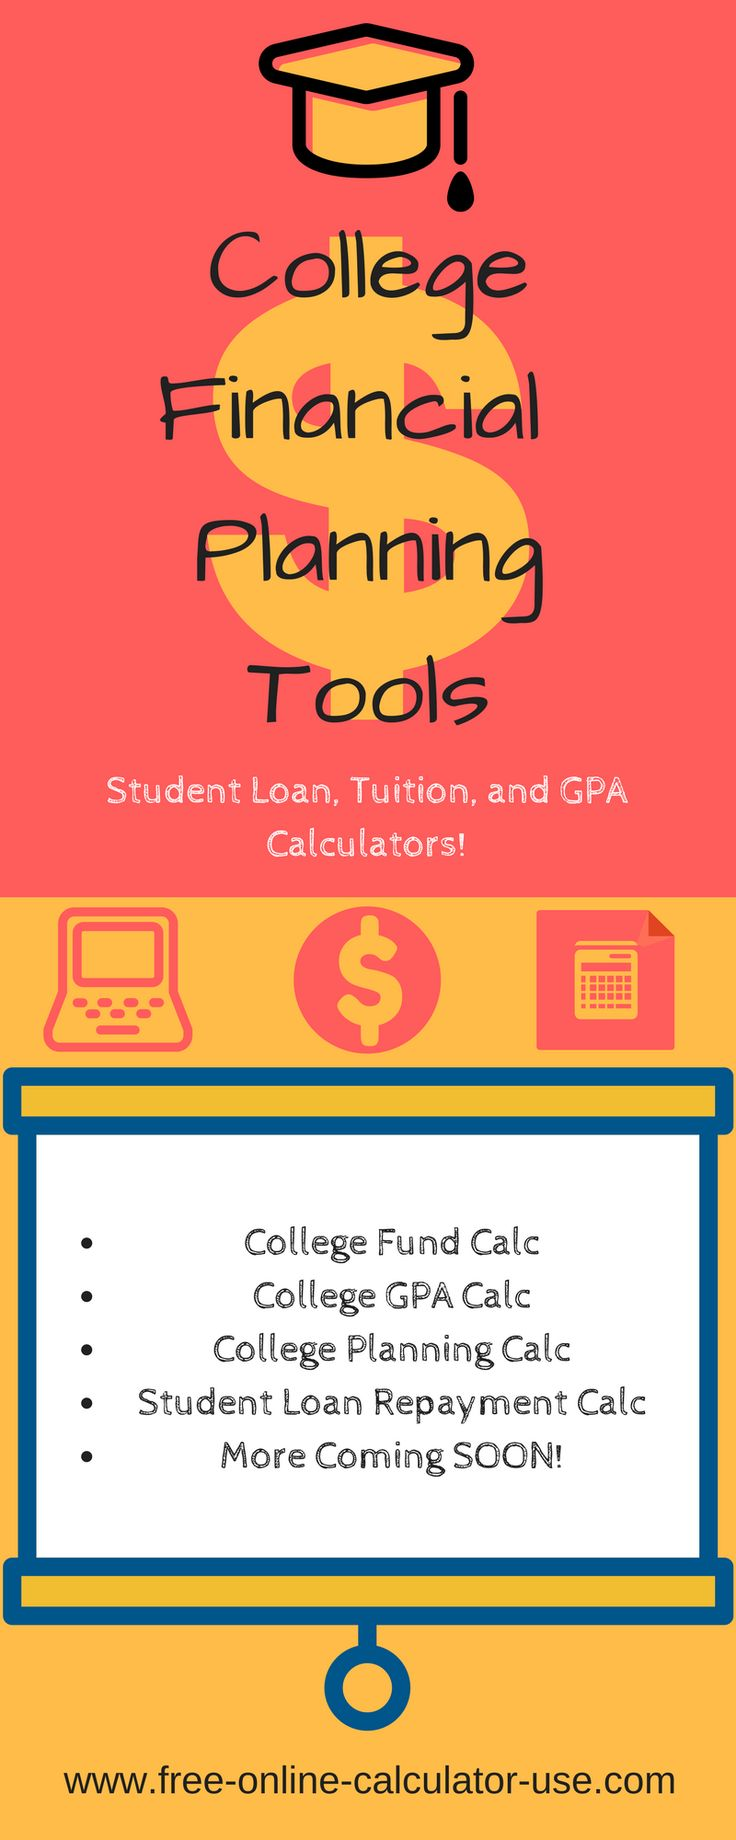 Image Gallery Of Wgu How To Calculate Gpa